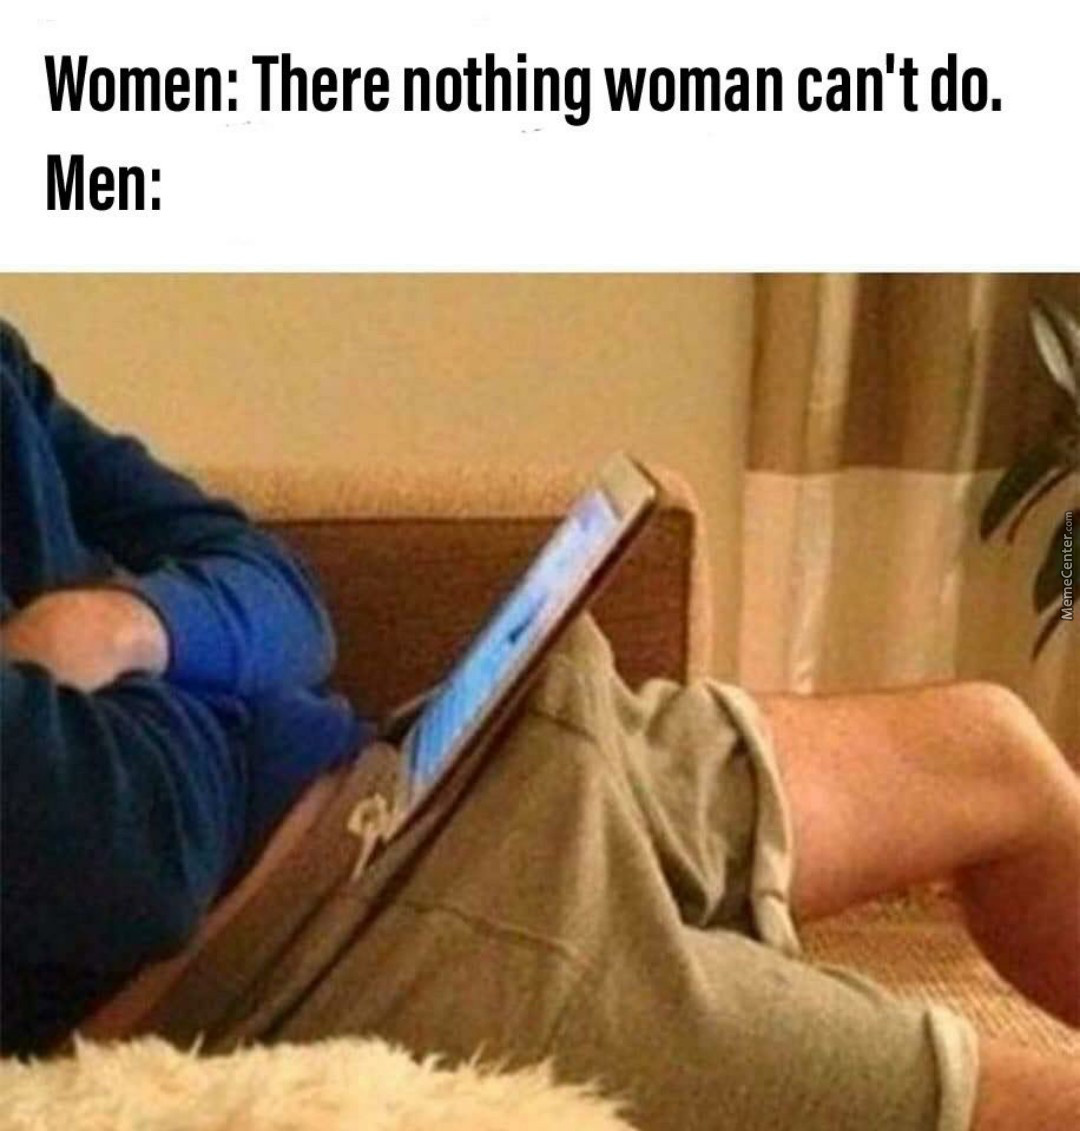 On Second Thought, Some Women Can Do That Nowadays